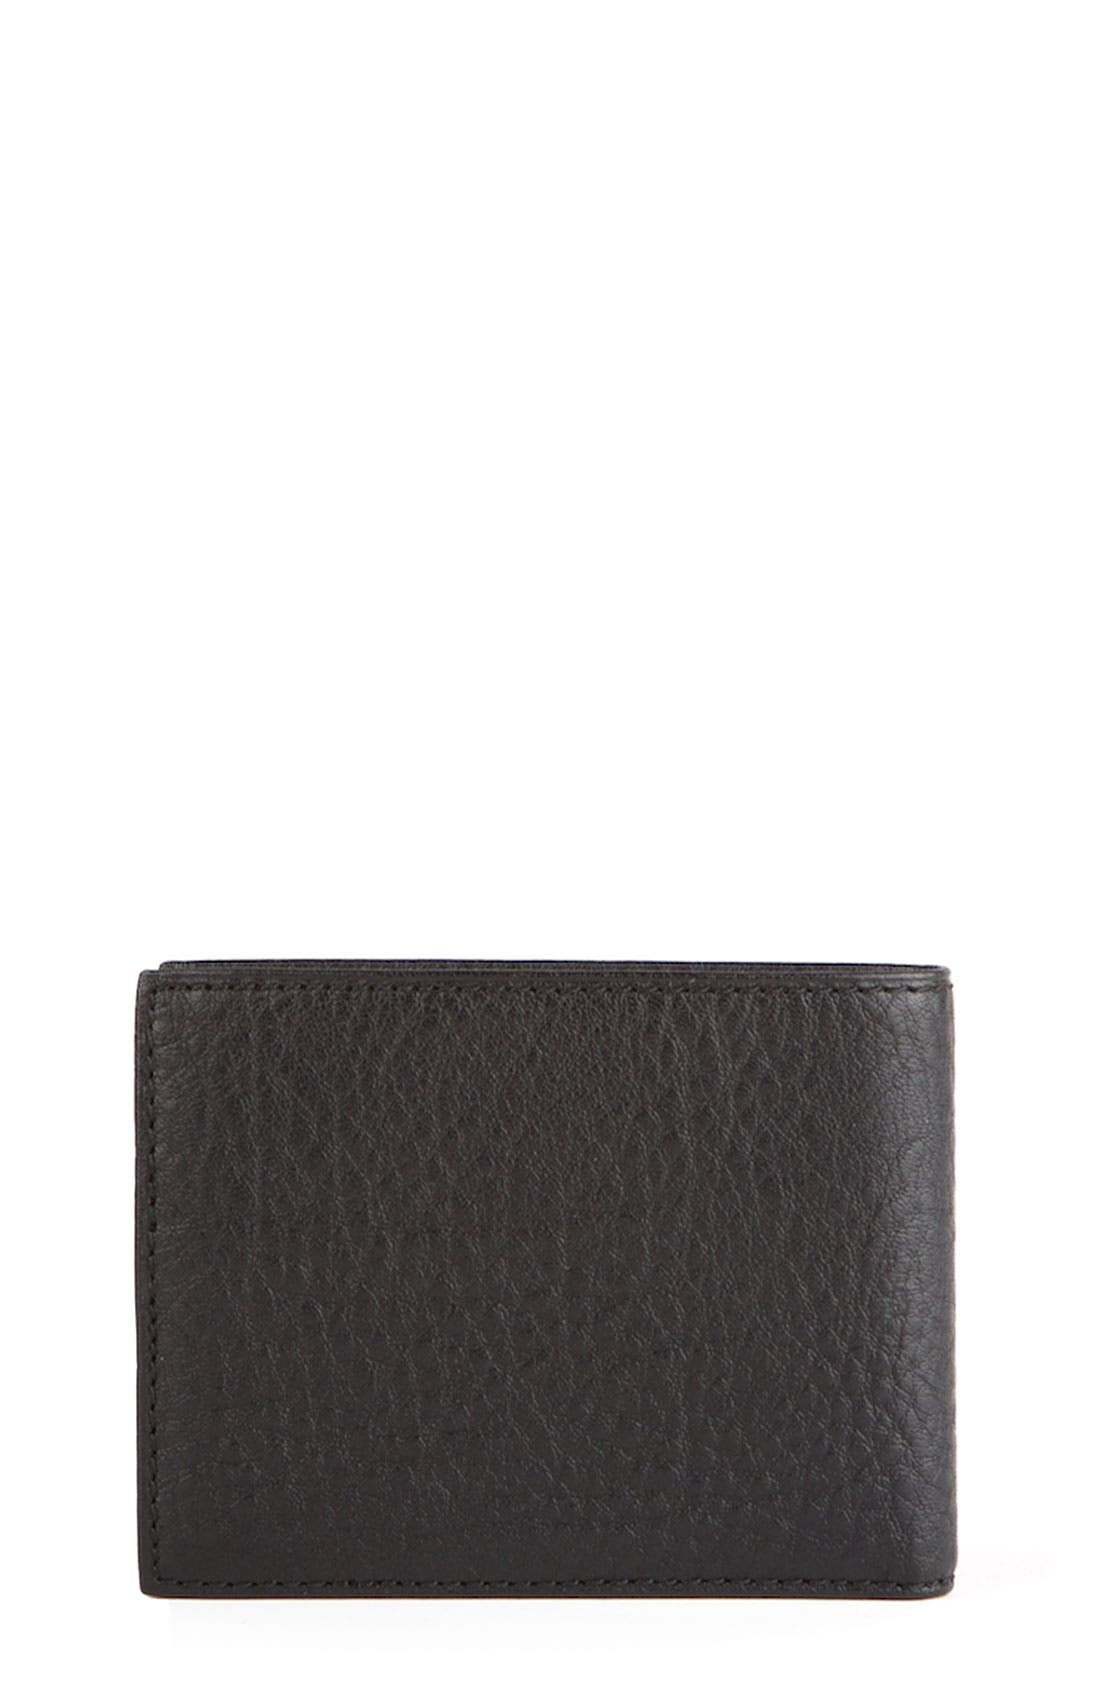 Alternate Image 1 Selected - Bosca ID Flap Bifold Leather Wallet